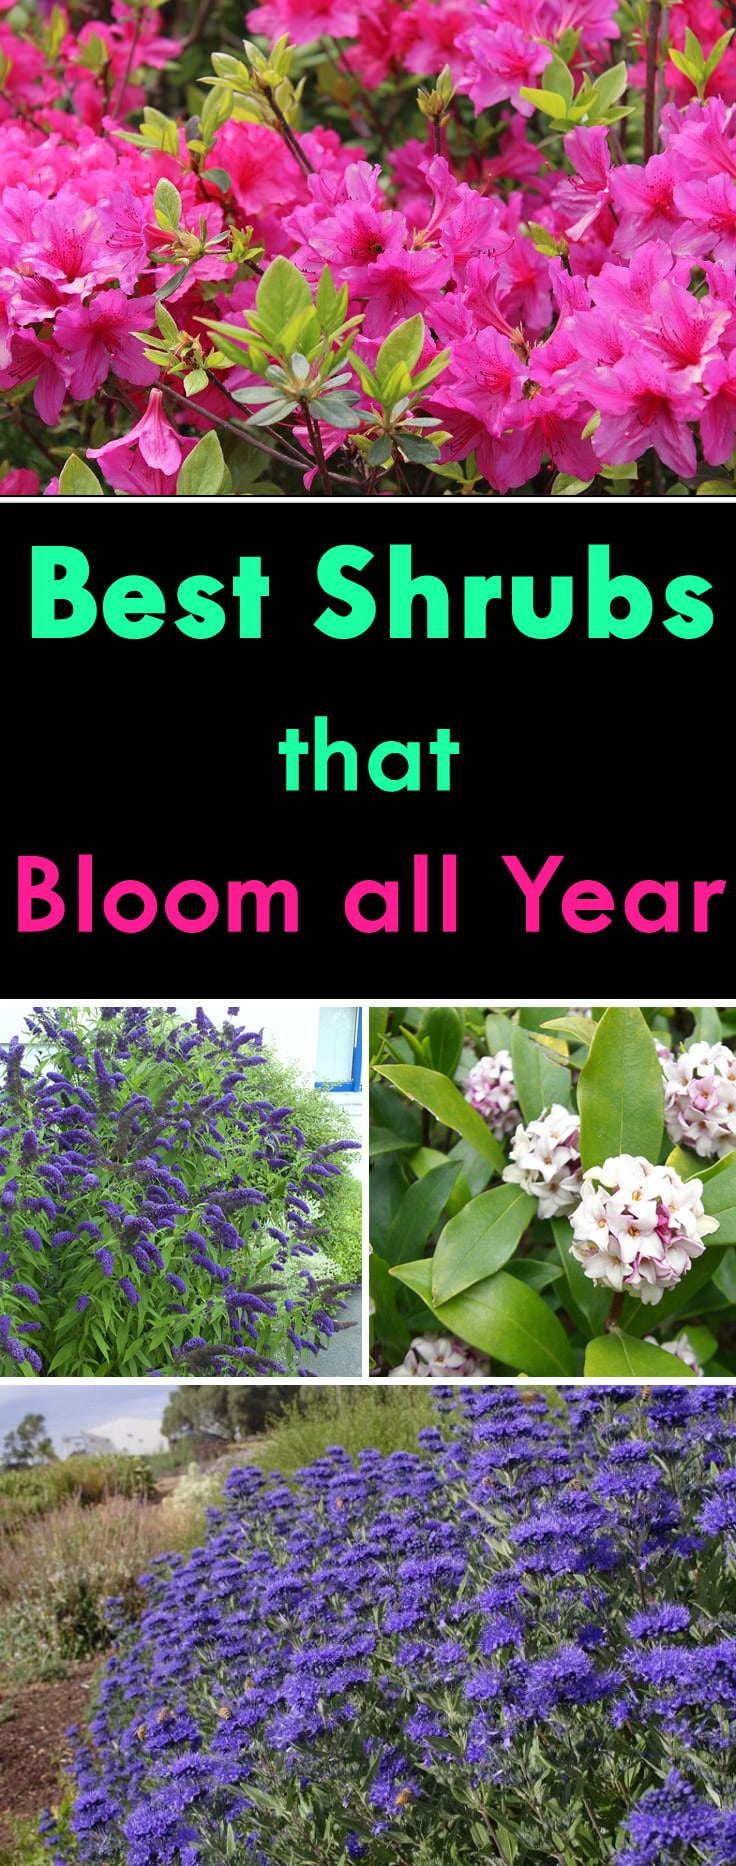 shrubs that bloom all year | year round shrubs according to season